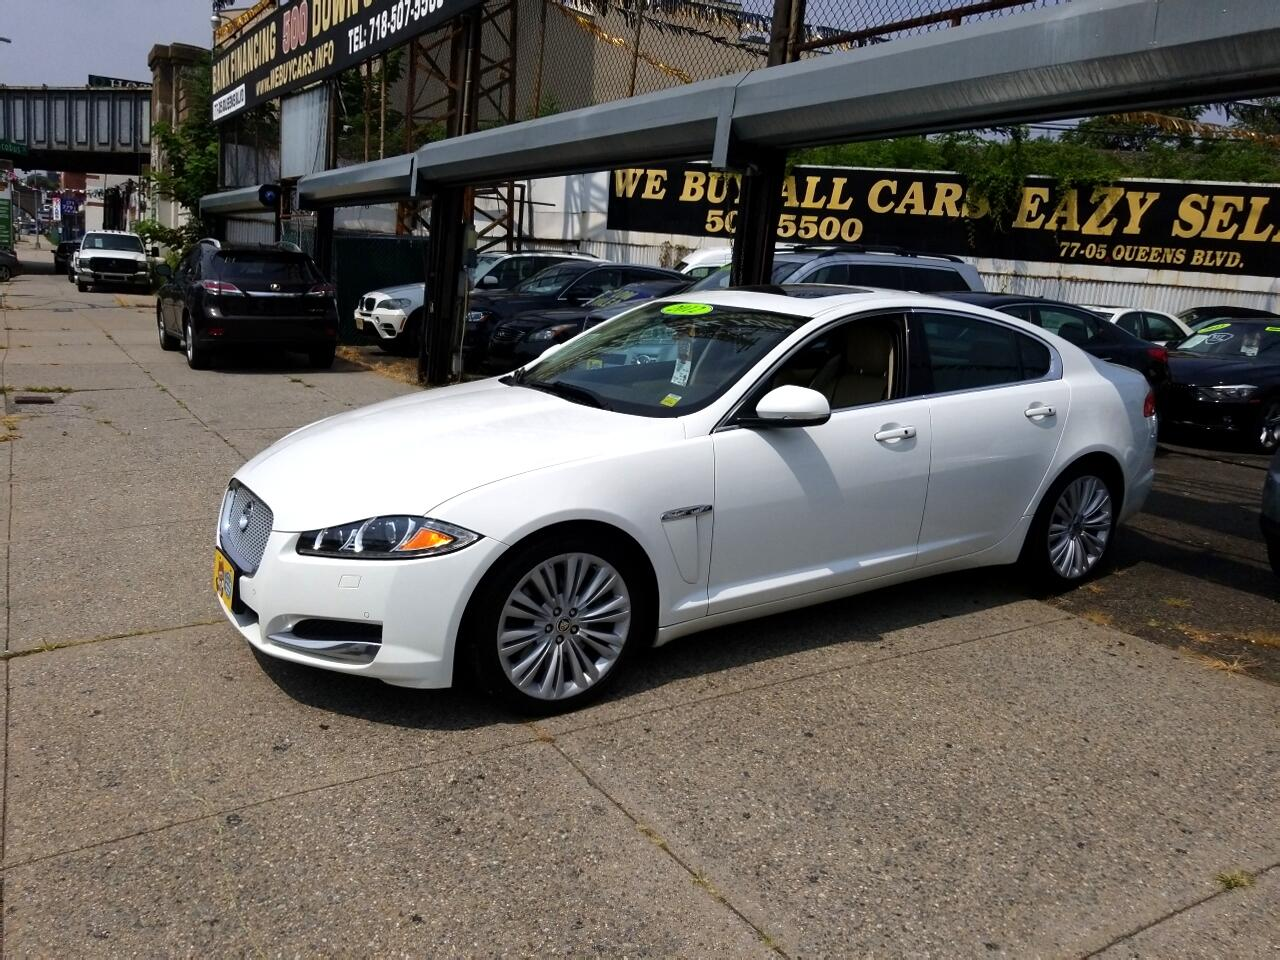 Used Cars For Sale Elmhurst Ny 11373 Buy Sell Inc 02 Toyota Camry Fuel Filter Location 2012 Jaguar Xf 4dr Sdn Portfolio